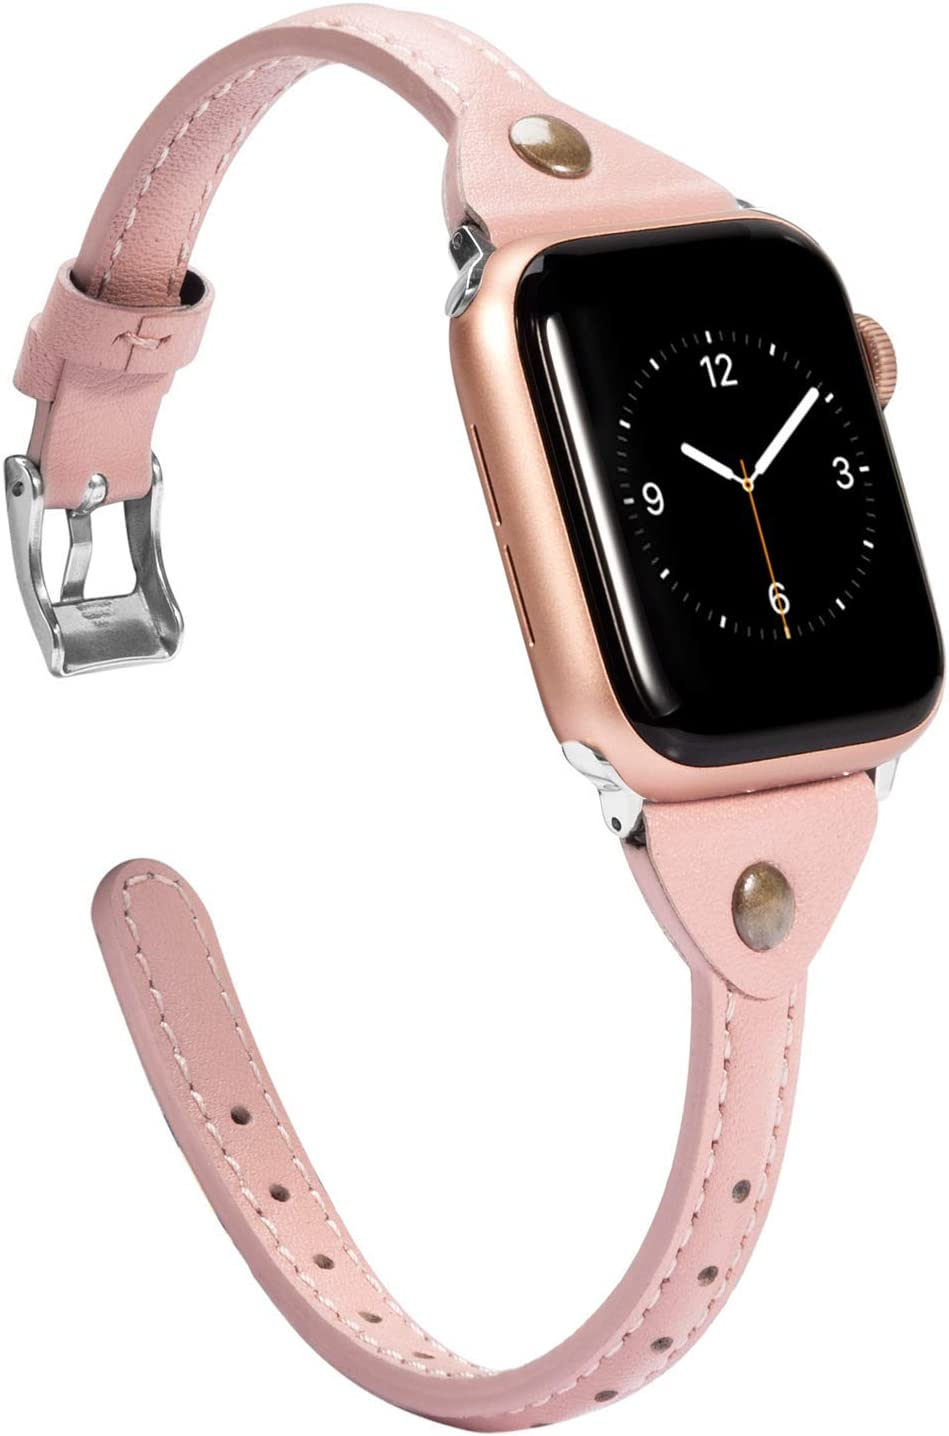 Wearlizer Womens Pink Slim Leather Compatible with Apple Watch Bands 38mm 40mm for iWatch SE Strap Wristbands Leisure Cute Unique Dressy Bracelet (Metal Silver Clasp) Series 6 5 4 3 2 1 Sports